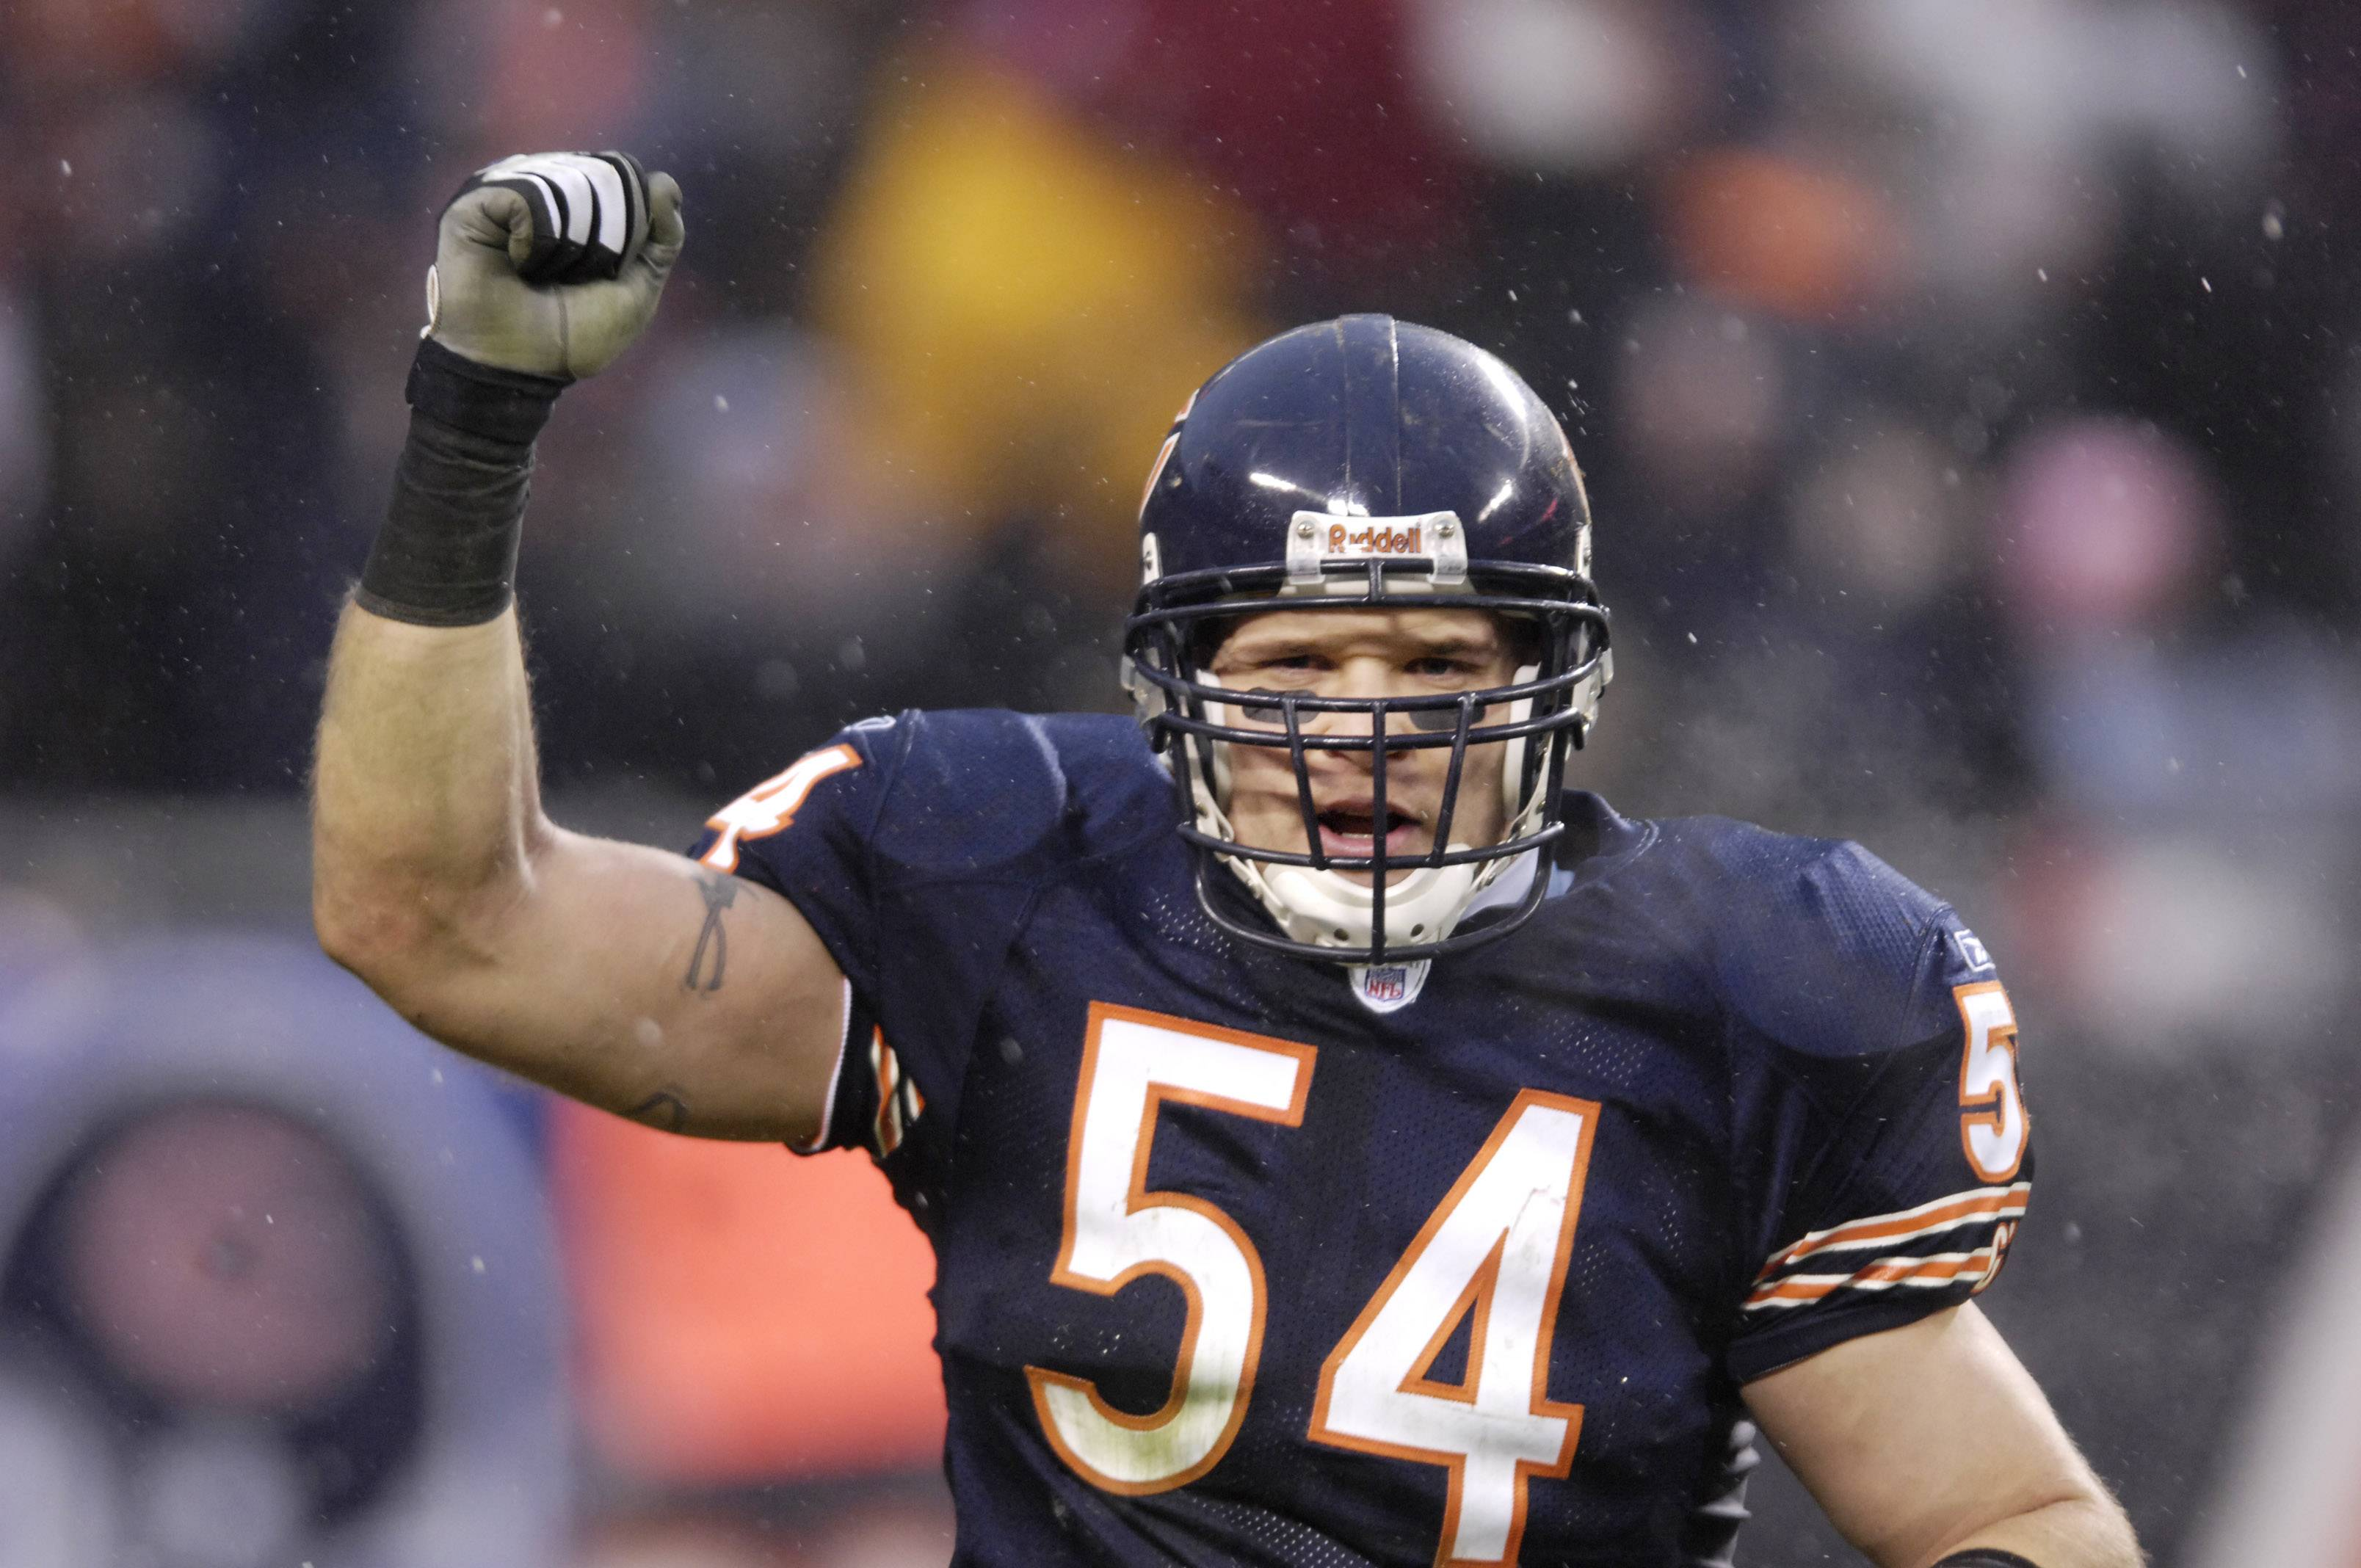 Chicago Bears to play Ravens in Hall of Fame game